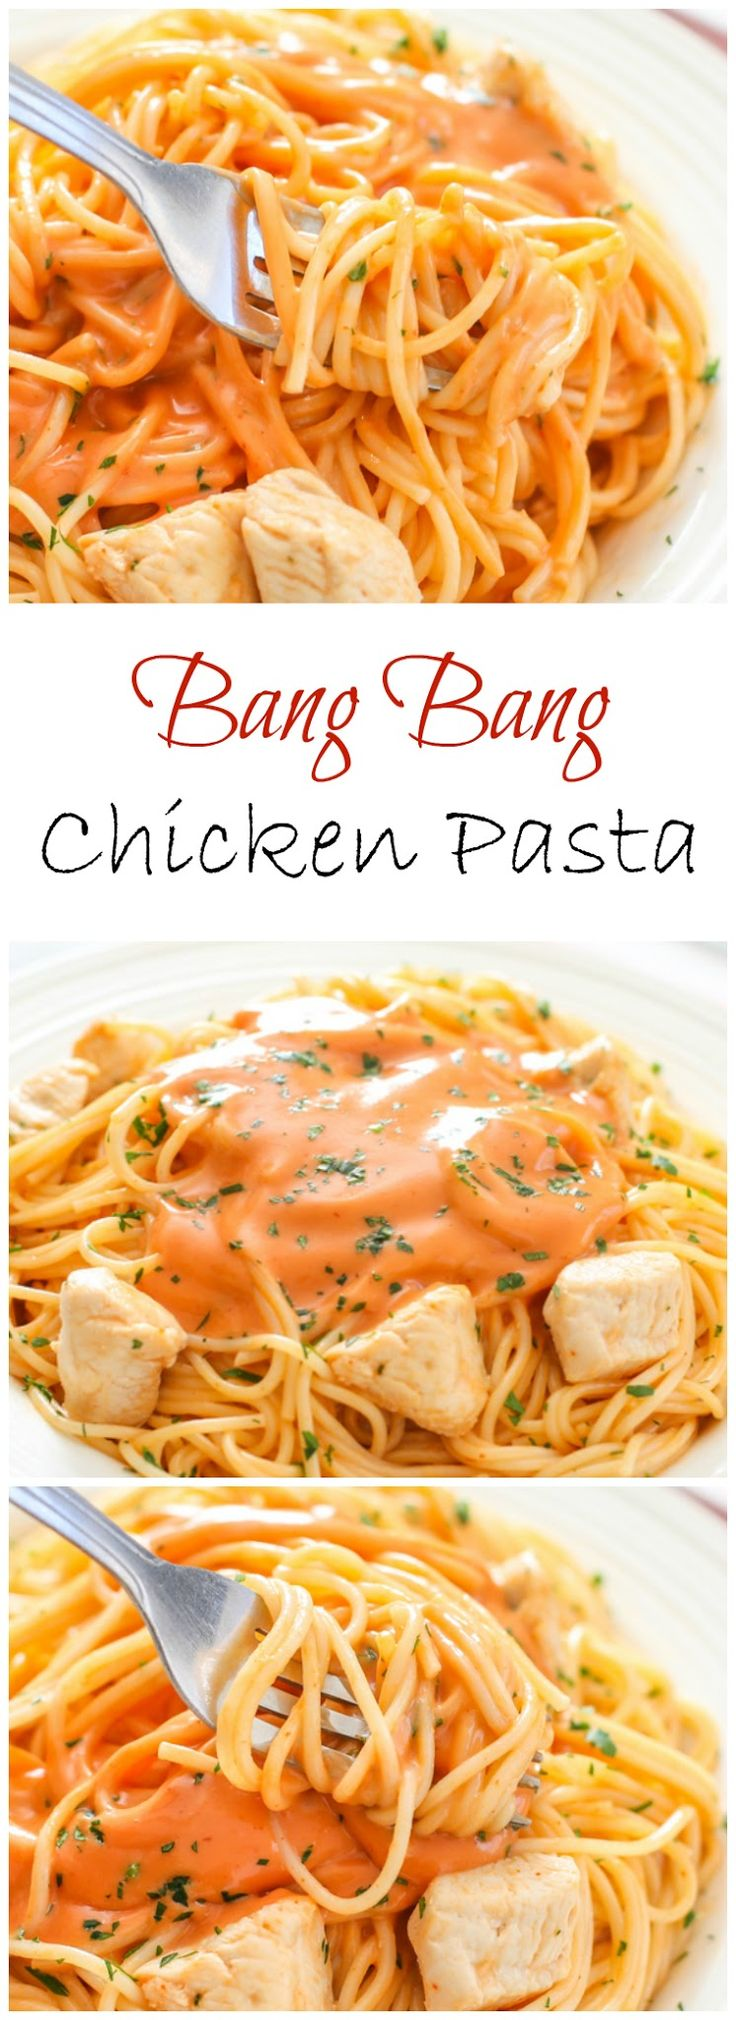 This chicken pasta is tossed in an addicting orange bang bang sauce.